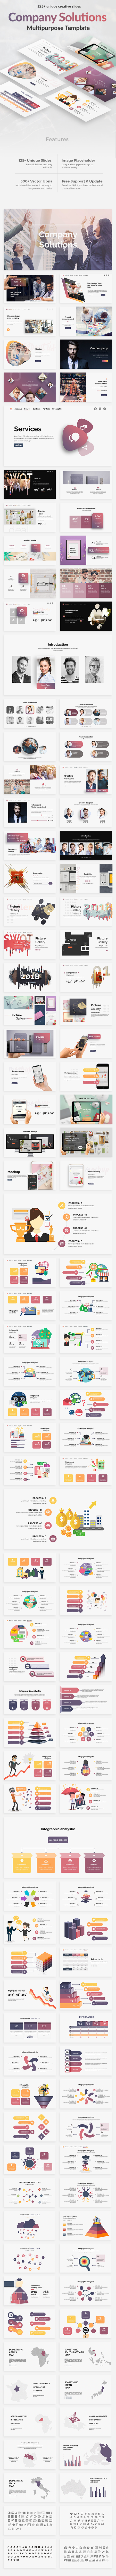 Company Solutions Powerpoint Template - Business PowerPoint Templates